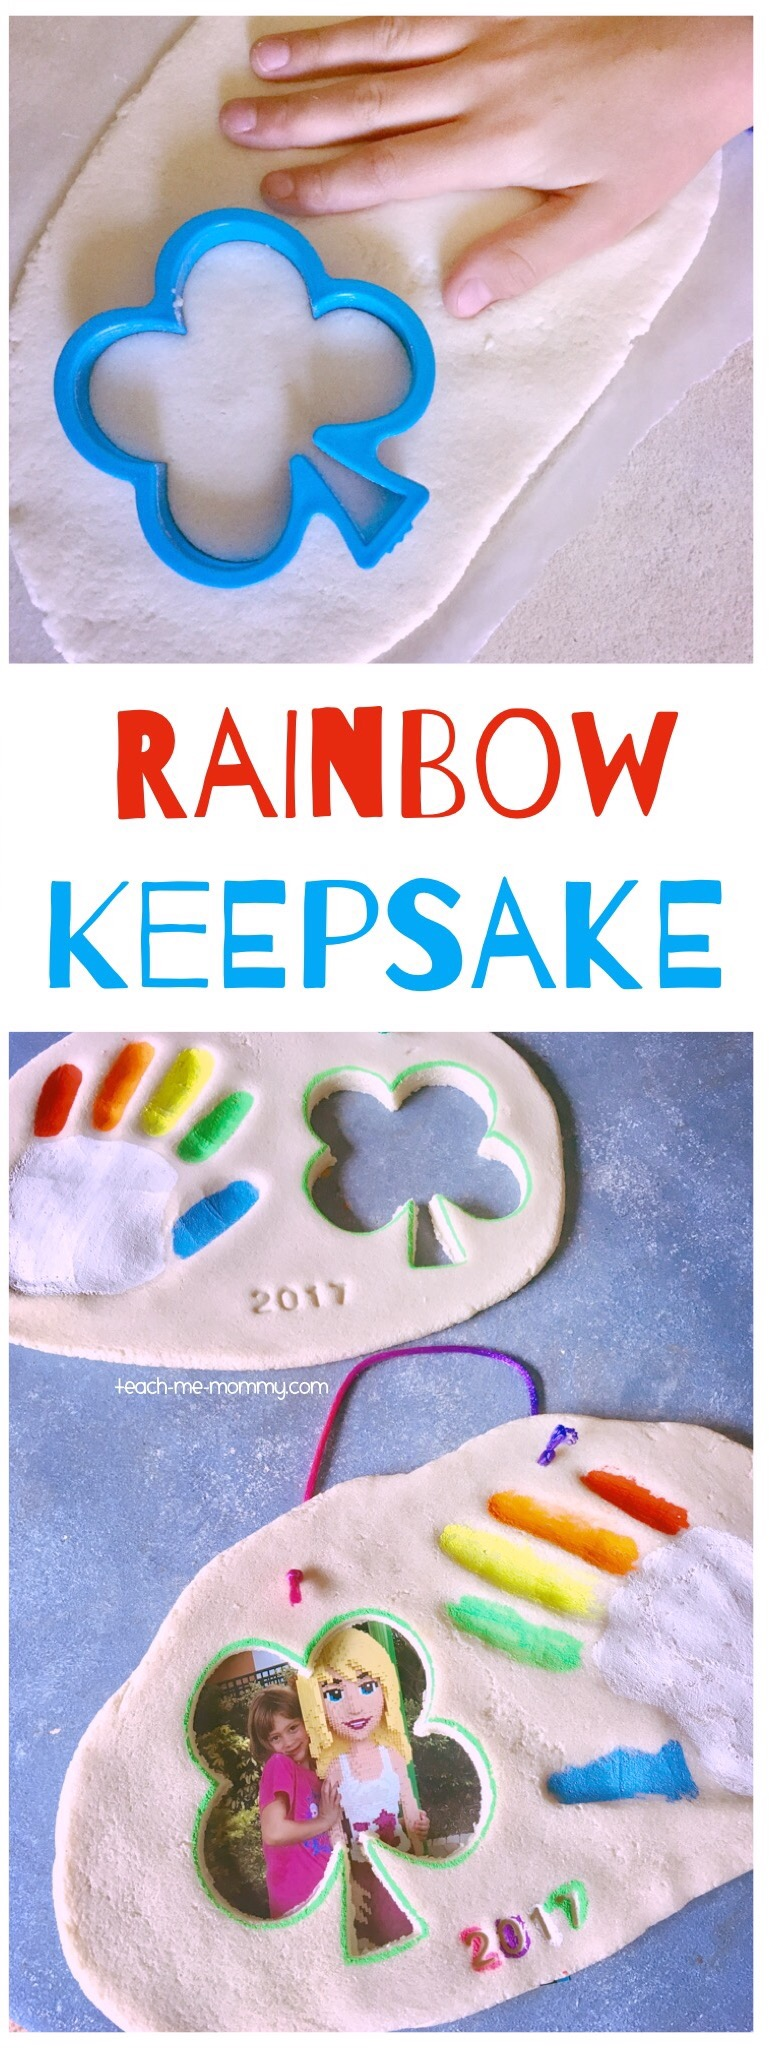 Rainbow keepsake